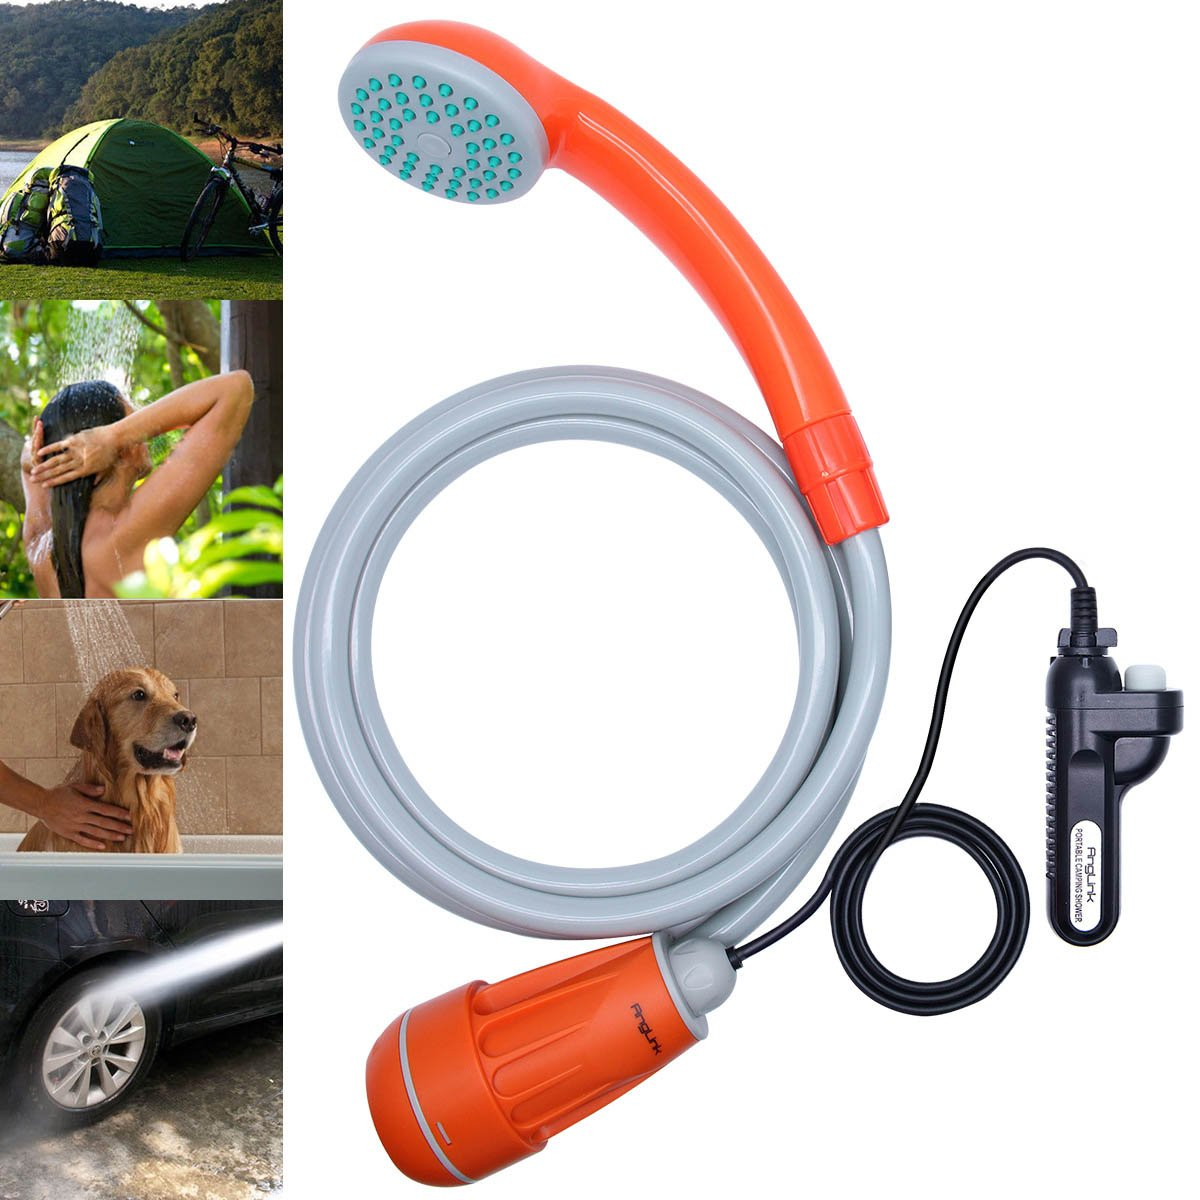 Anglink Upgraded Portable Camping Shower, Battery Powered Outdoor Shower for Outdoors, Camping, Pet Cleaning, Car Washing, Plants Watering - Turns Water from Bucket/Sink Into Steady, Gentle Stream